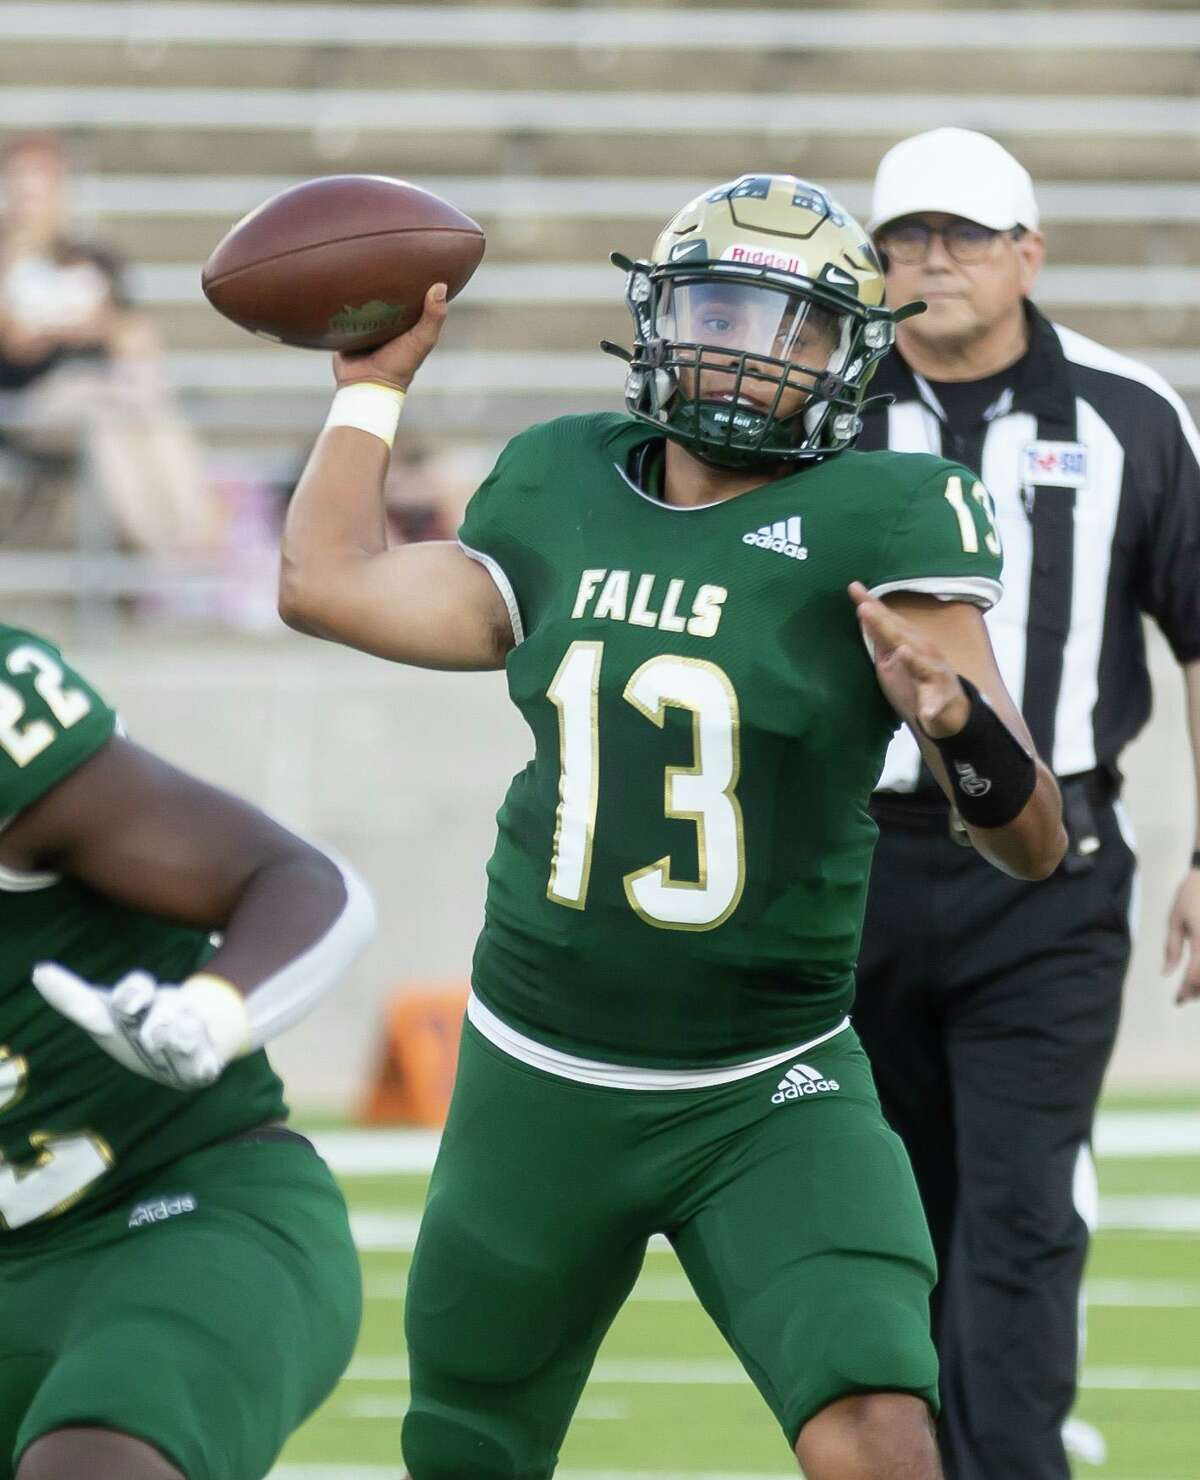 Cypress Falls quarterback Jonathan Valdez (13) throws during the first quarter of a non-district football game against Travis at Cy-Fair FCU Stadium, Saturday, Sept. 11, 2021, in Cypress.